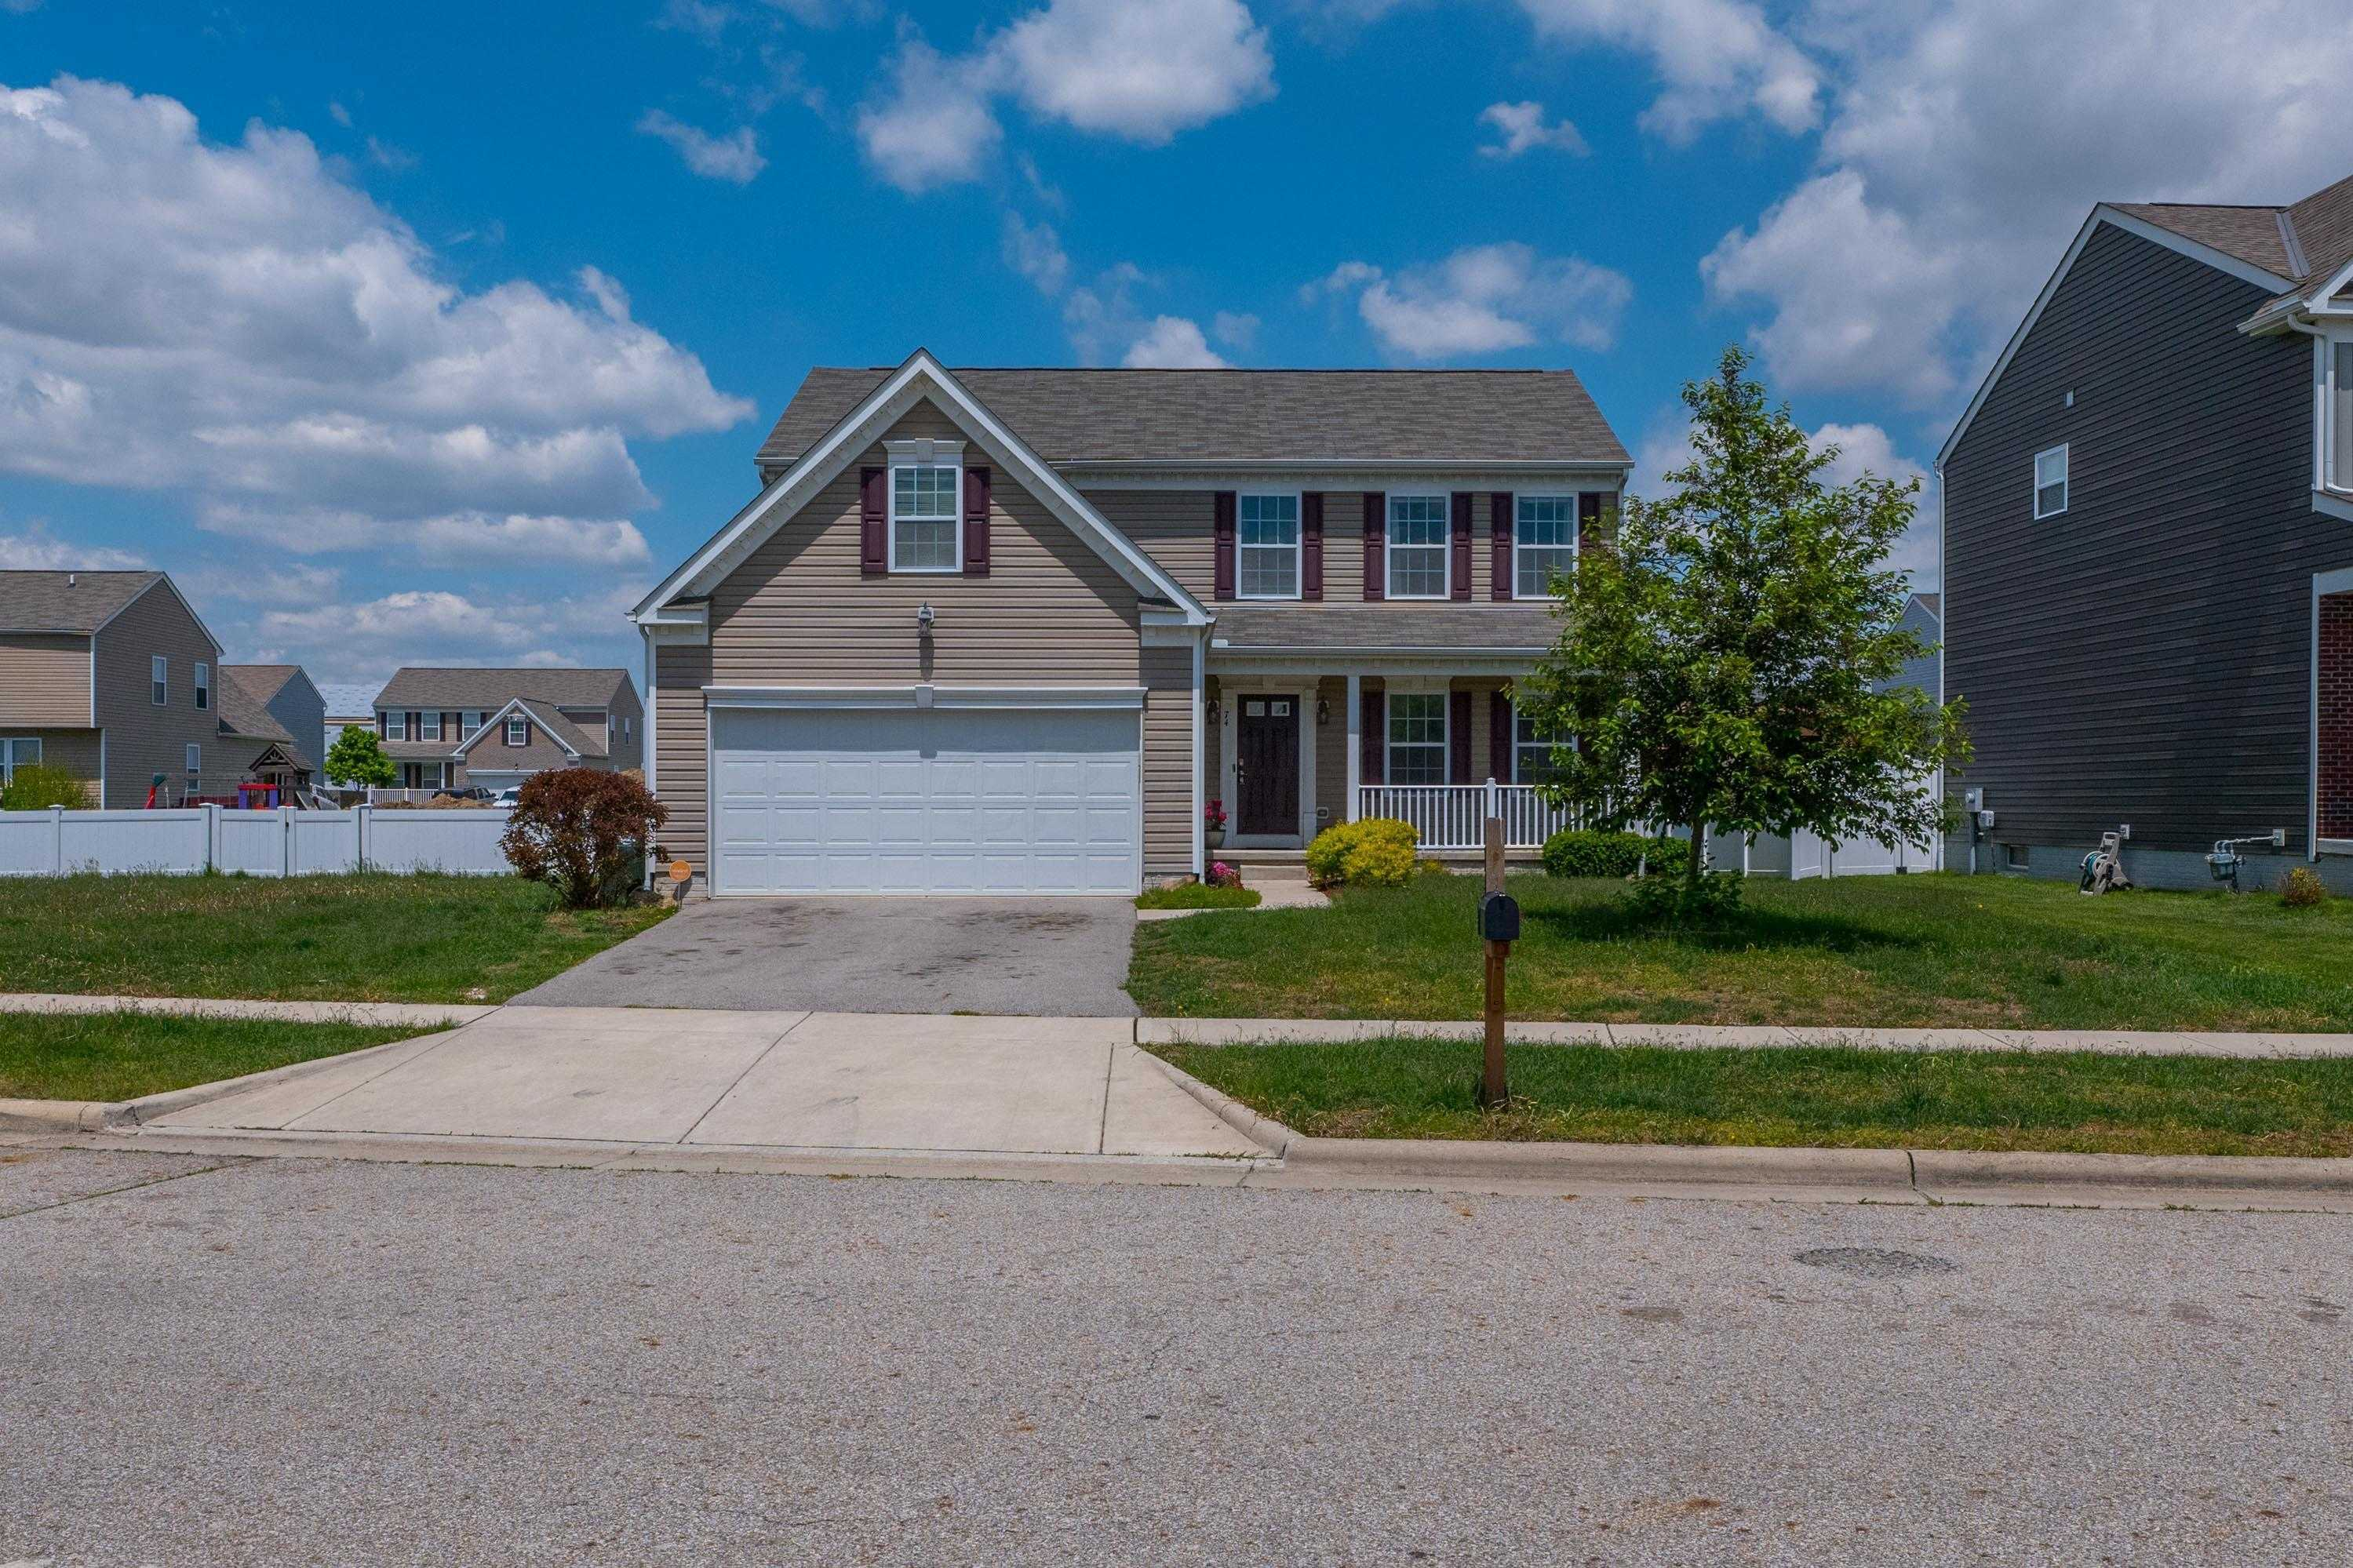 74 Henderson Lane South Bloomfield,OH 43103 221015721